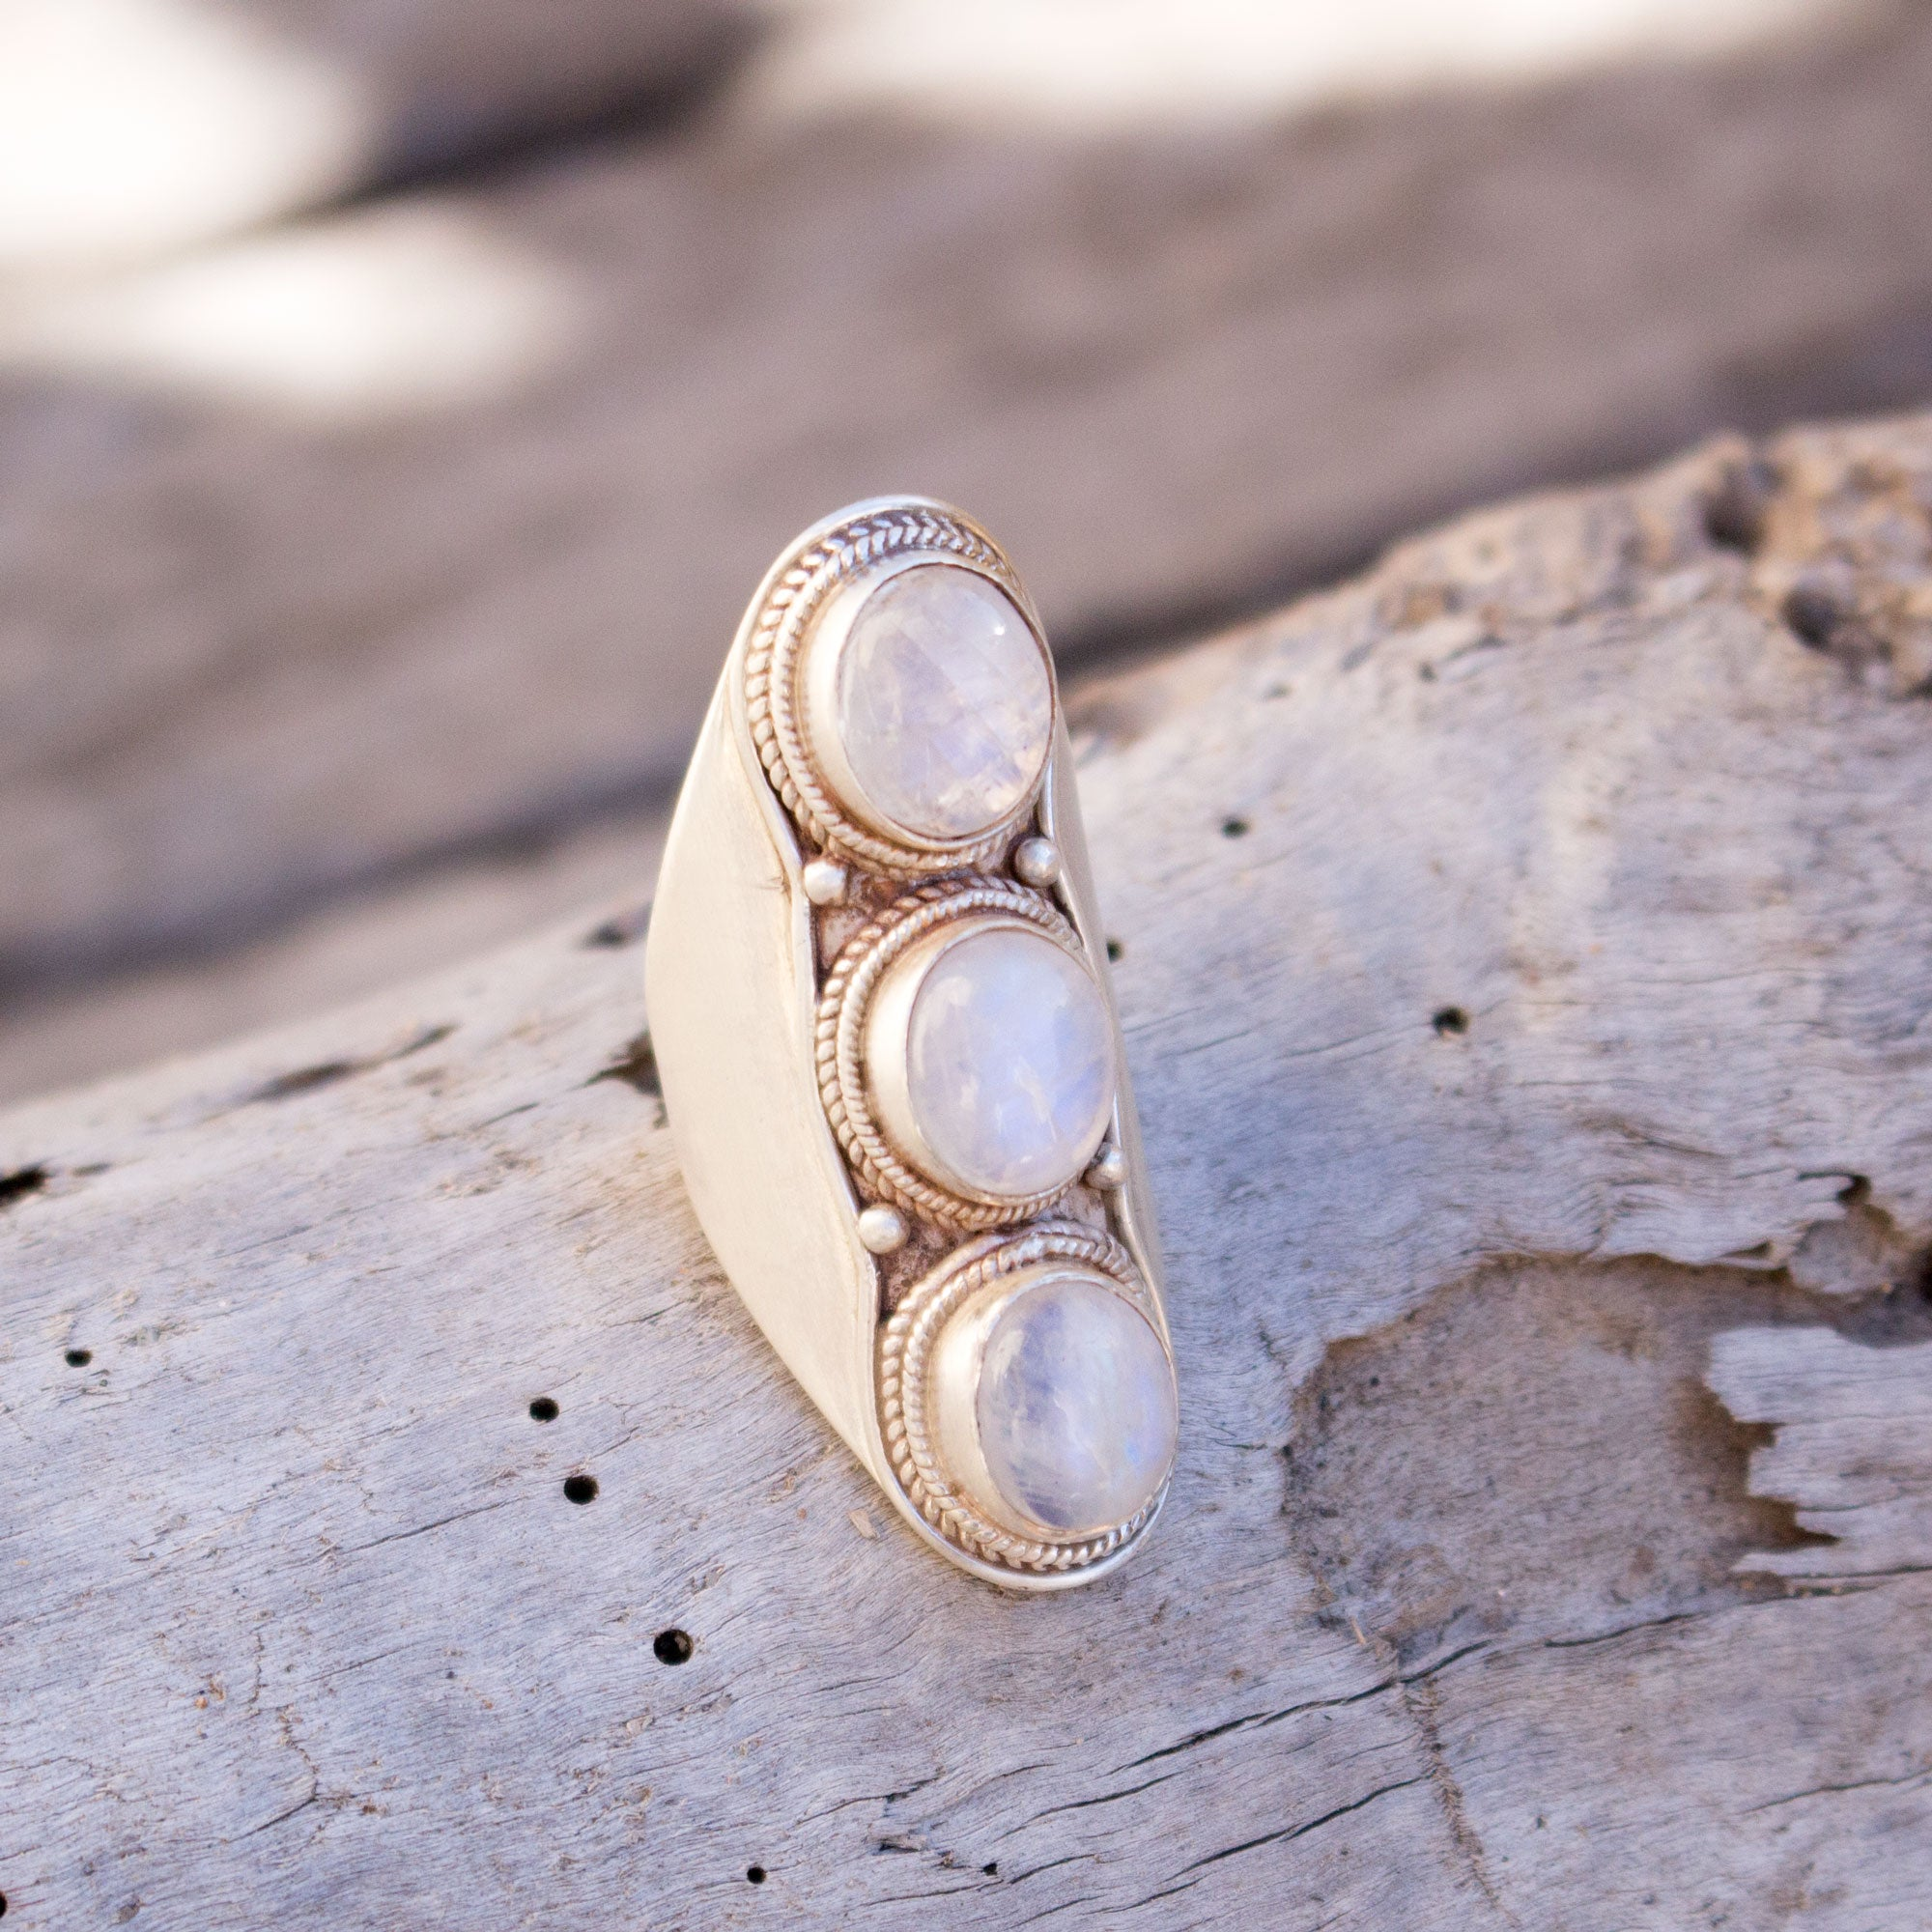 Rainbow moonstone saddle ring